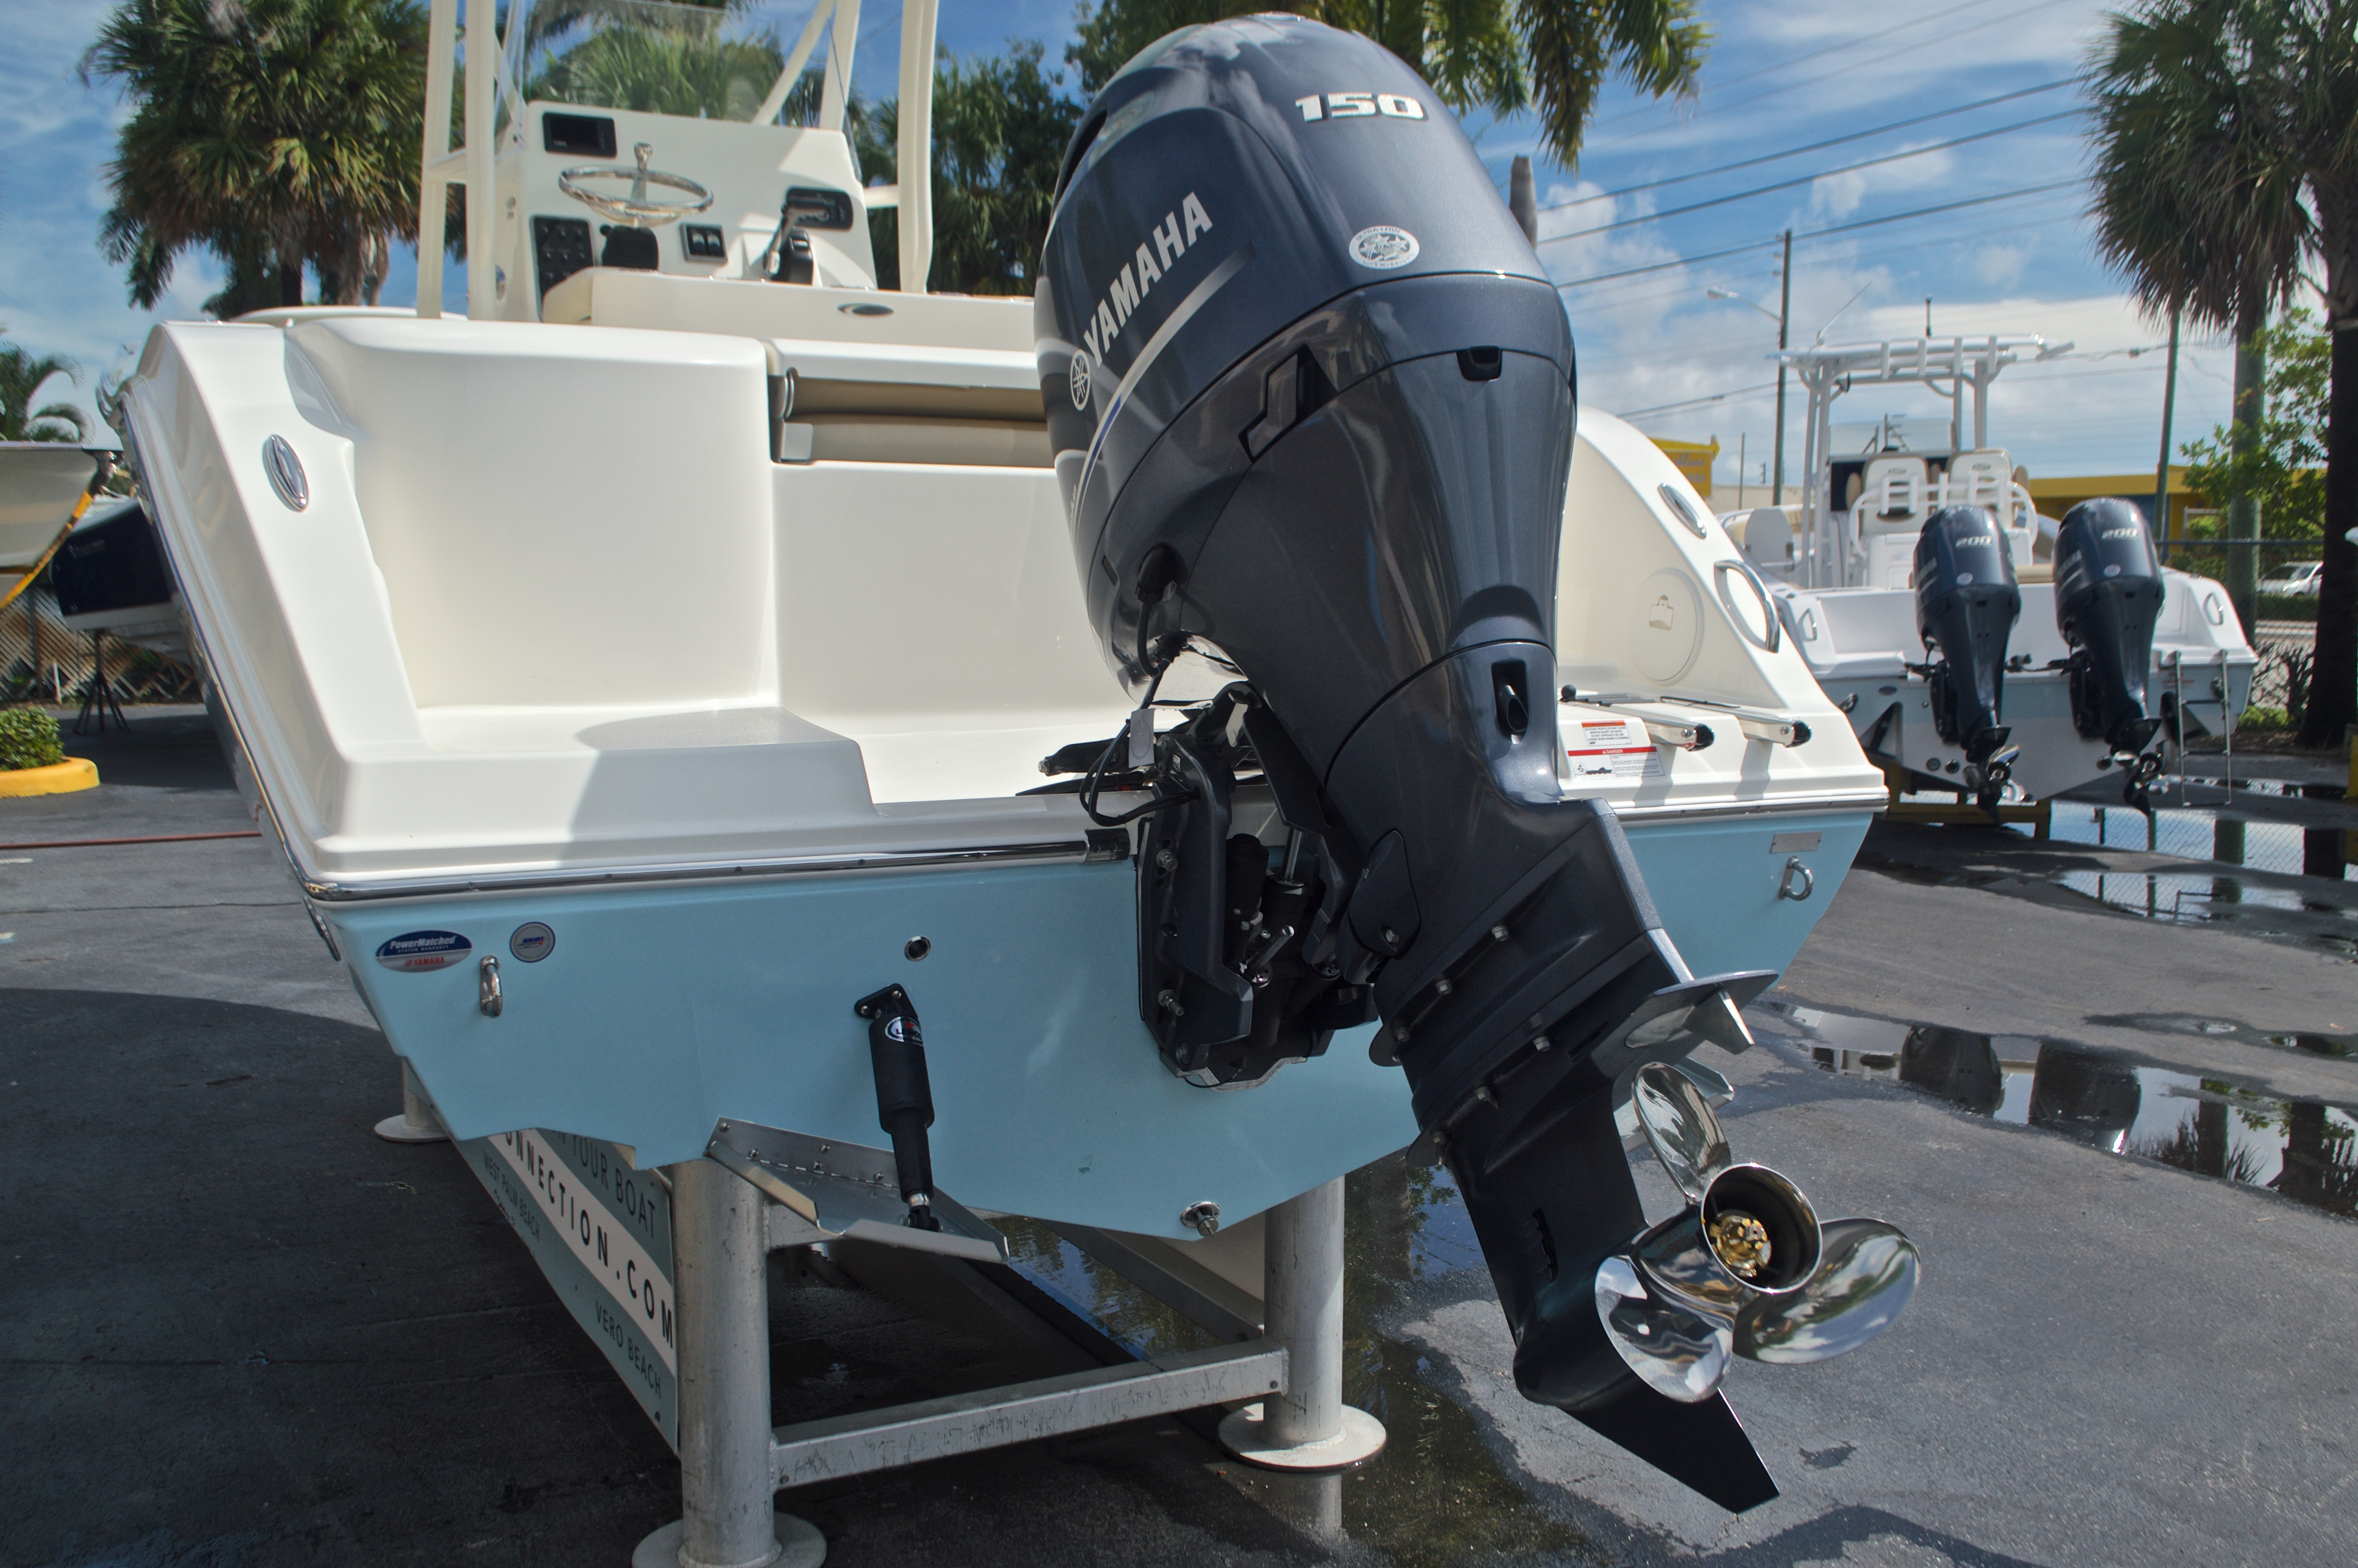 Thumbnail 7 for New 2017 Cobia 201 Center Console boat for sale in West Palm Beach, FL